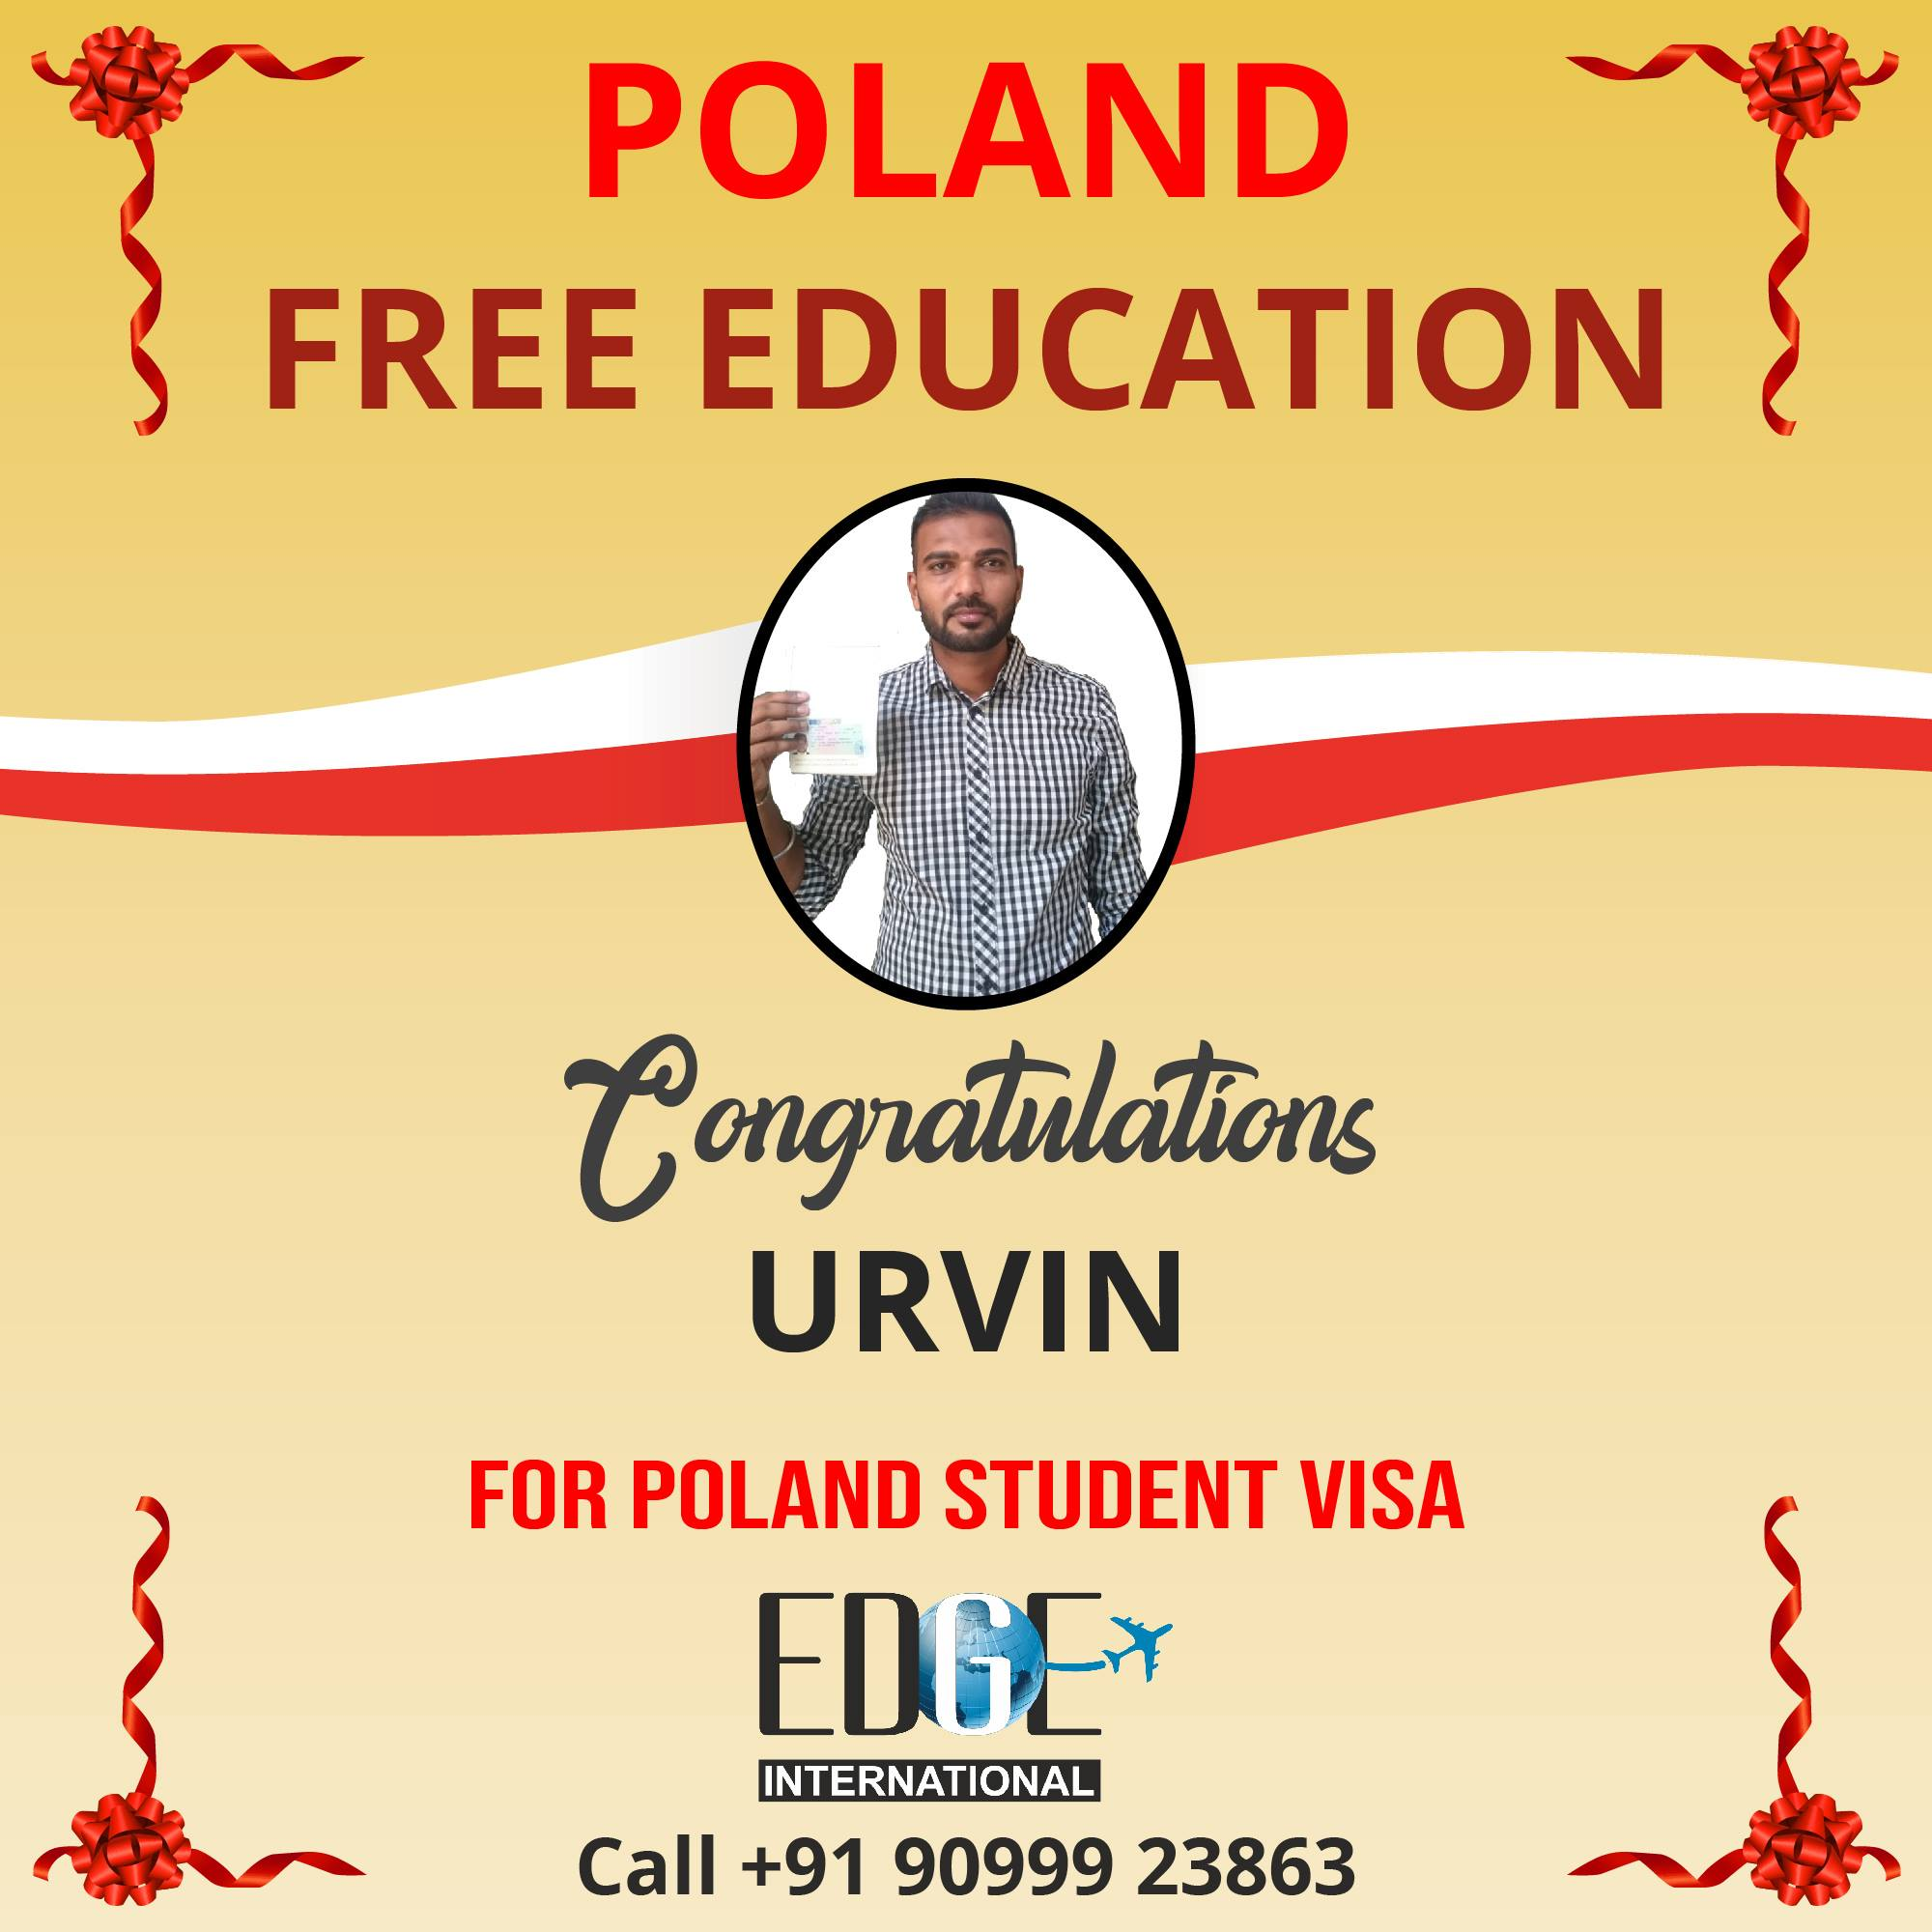 Congratulations to Urvin on getting FREE EDUCATION in POLAND